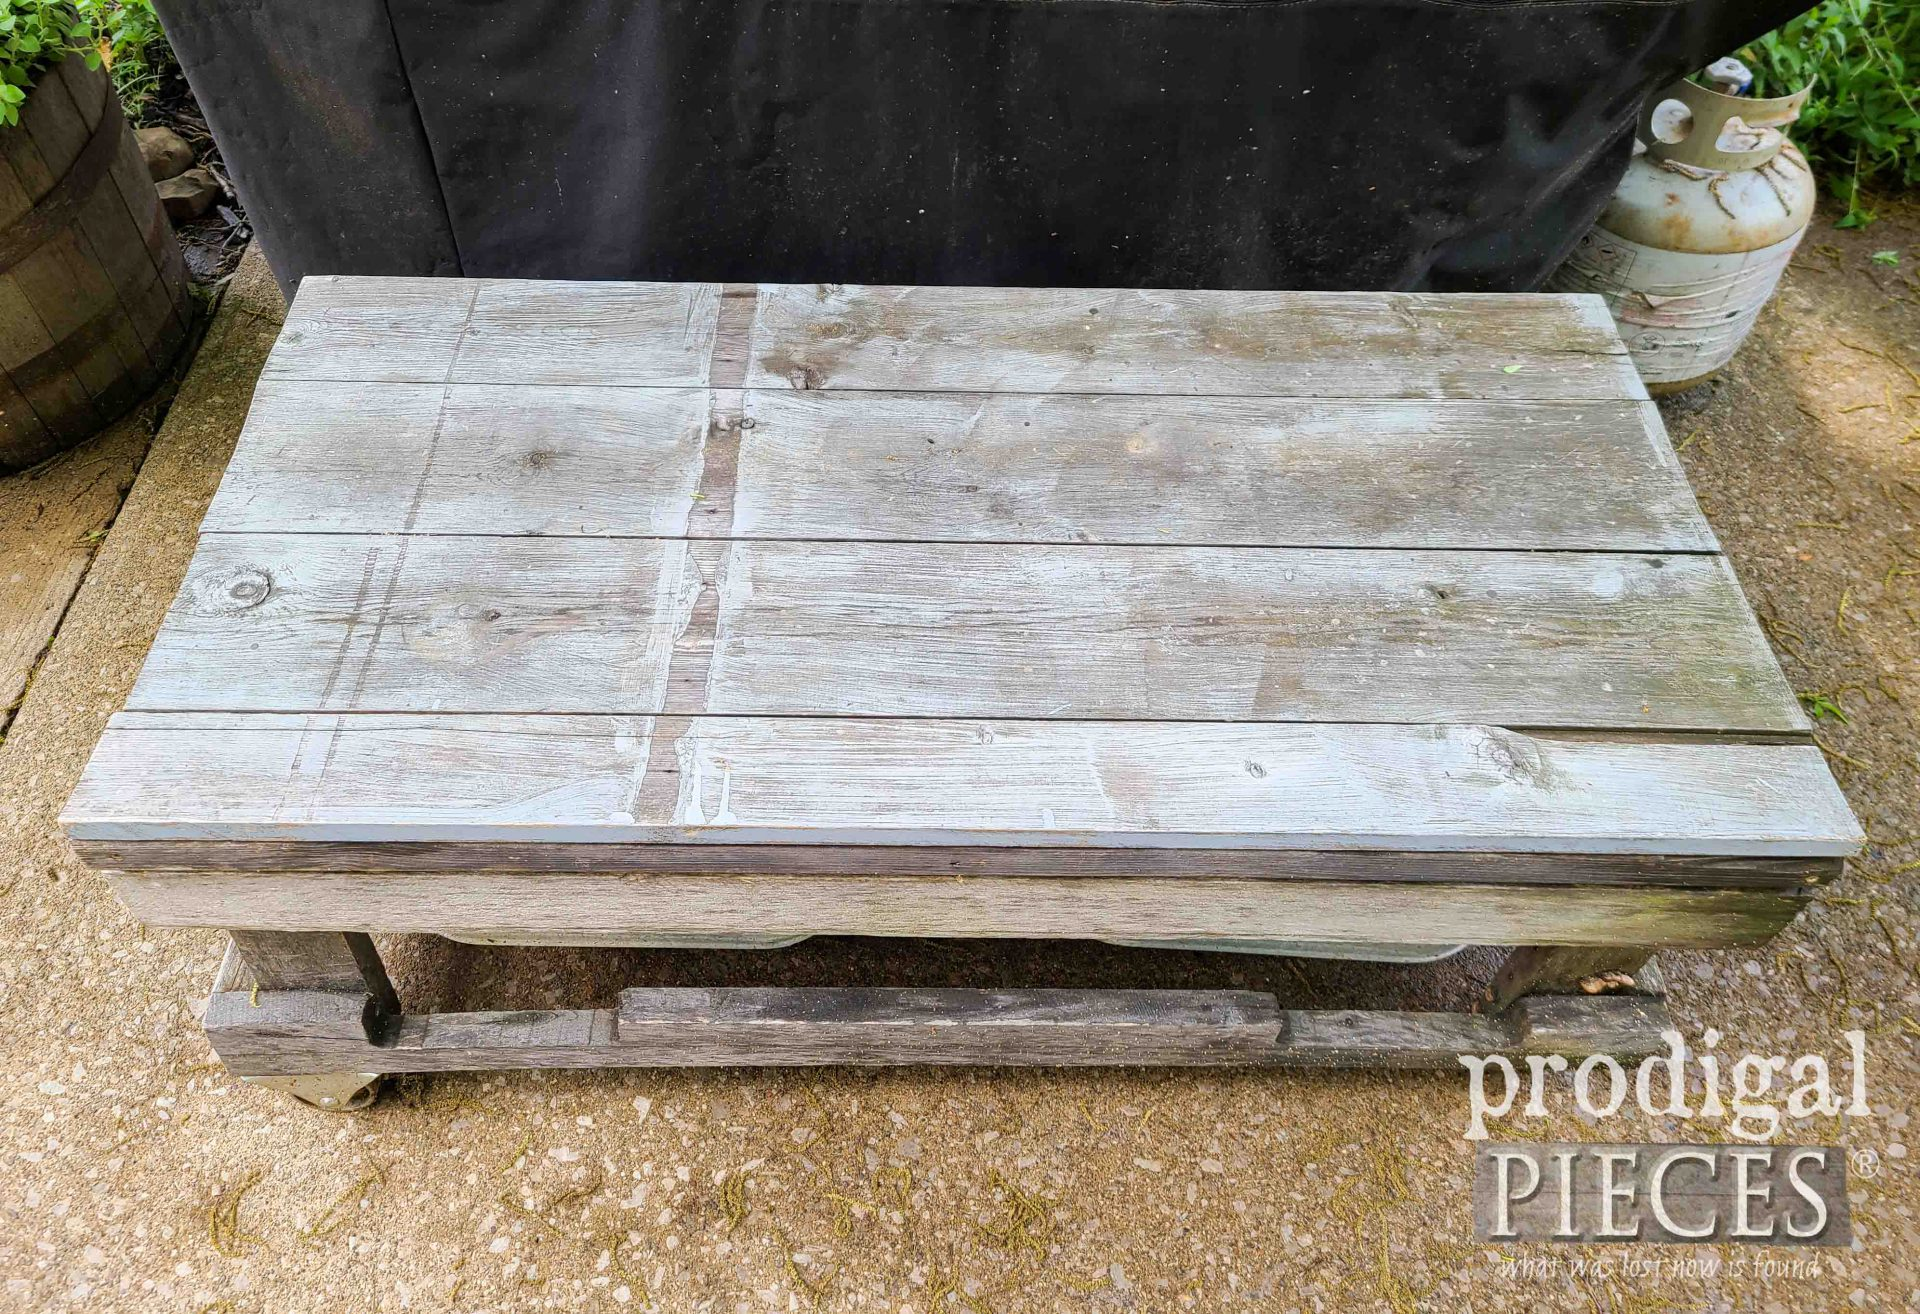 Reclaimed Patio Coffee Table Before | prodigalpieces.com